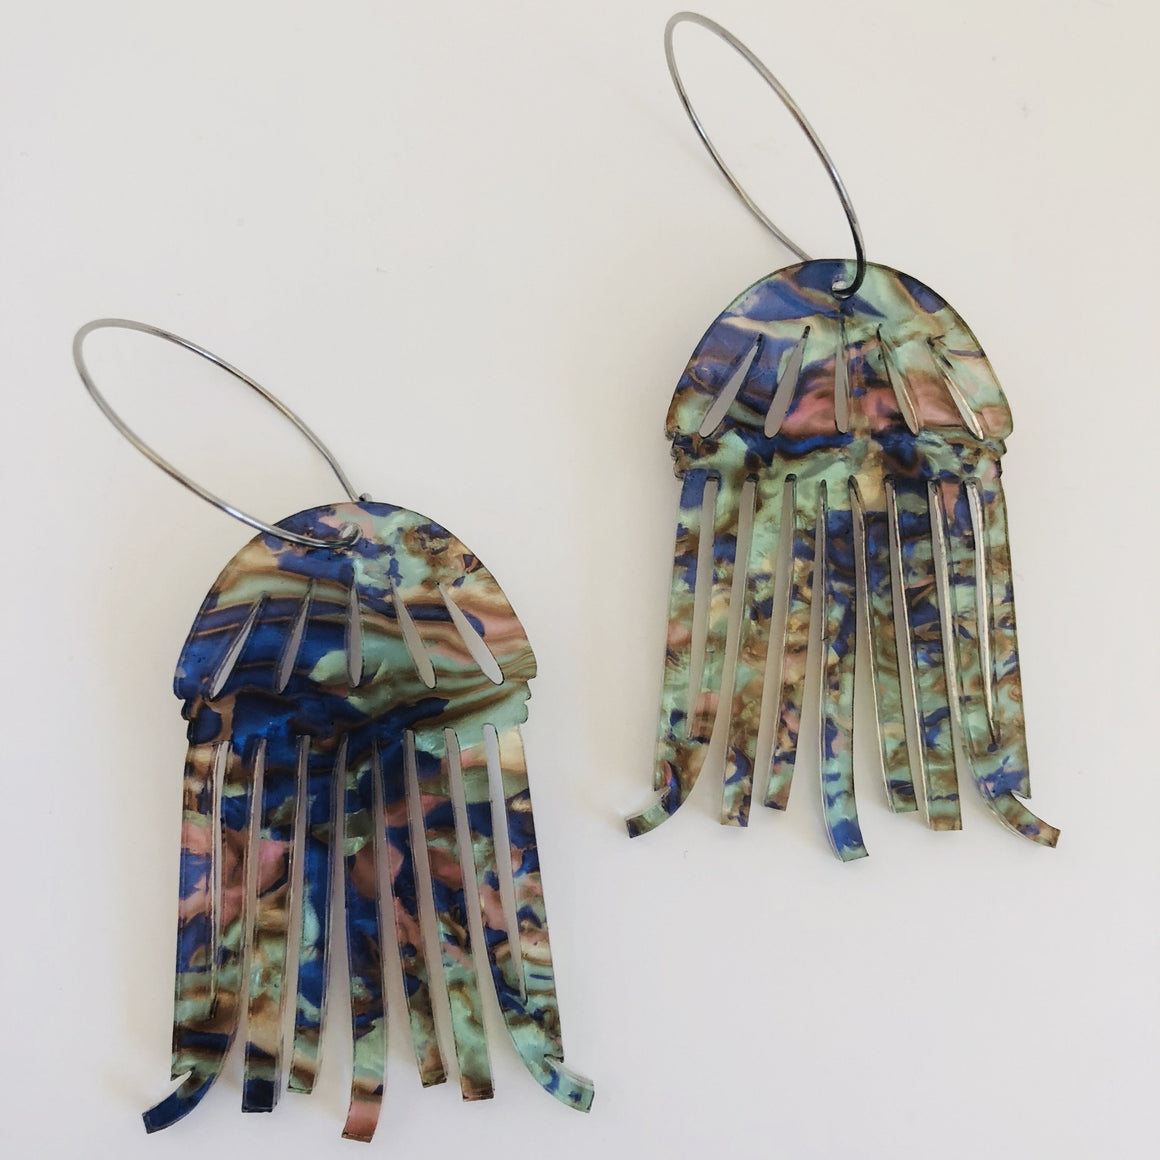 Mintcloud Dangle - Jelly Fish